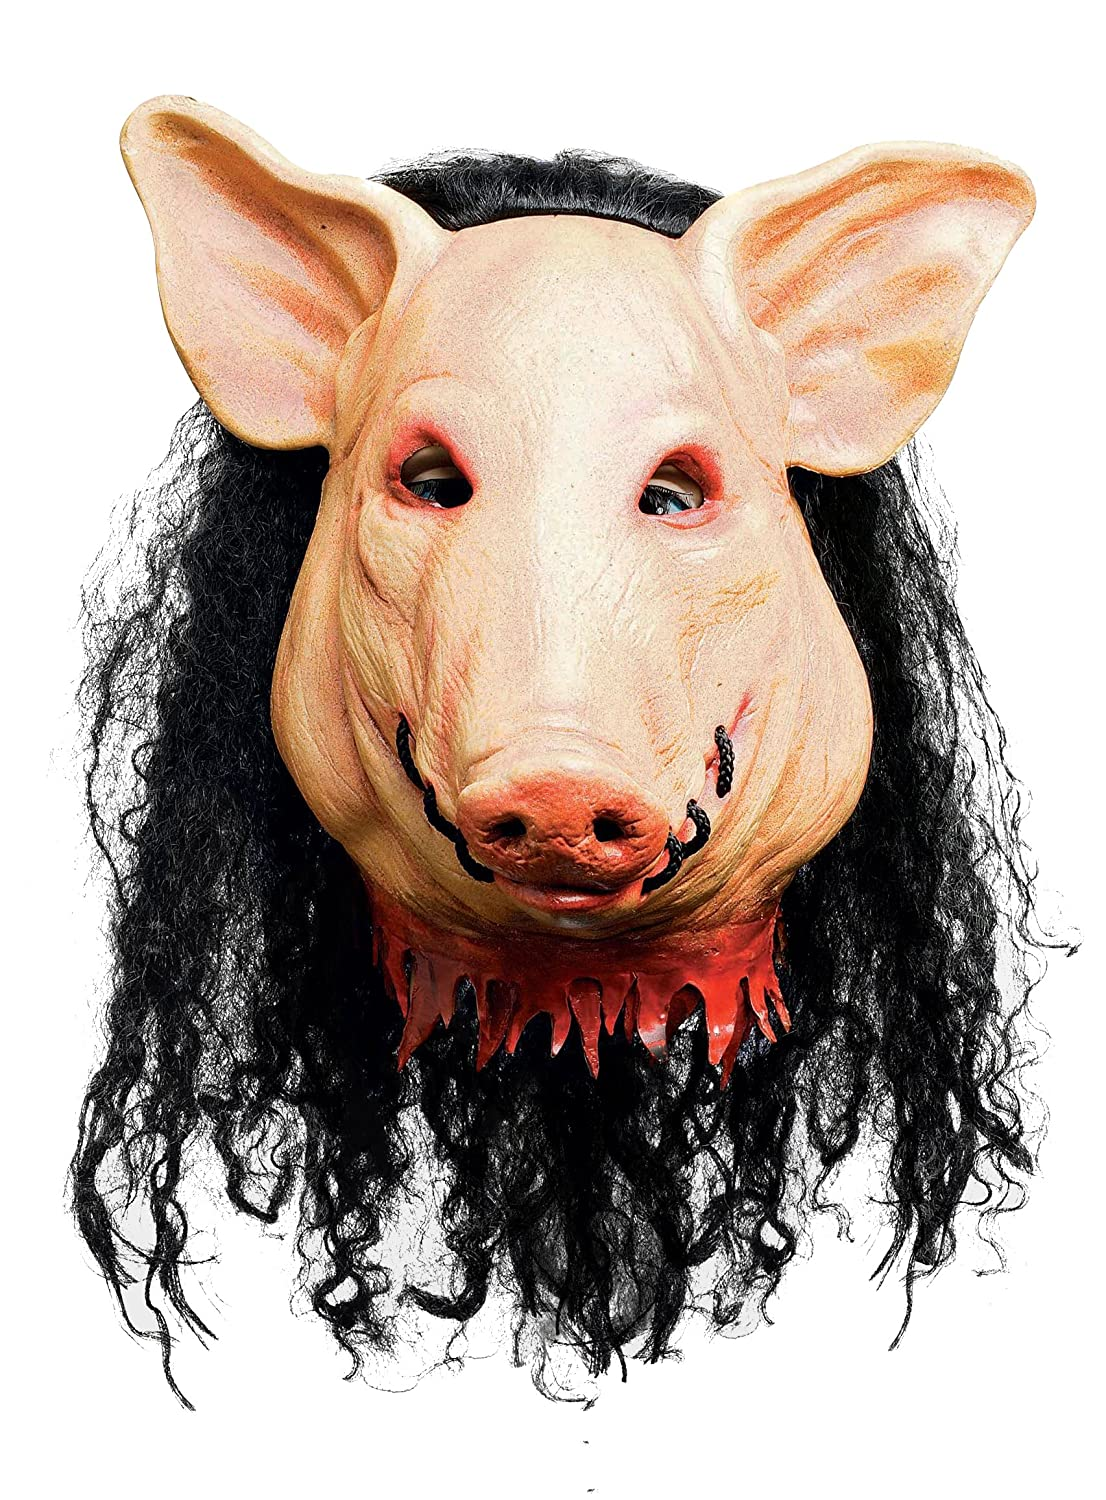 SAW - HORROR PIG MASK DELUXE (máscara/careta): Amazon.es: Juguetes y juegos